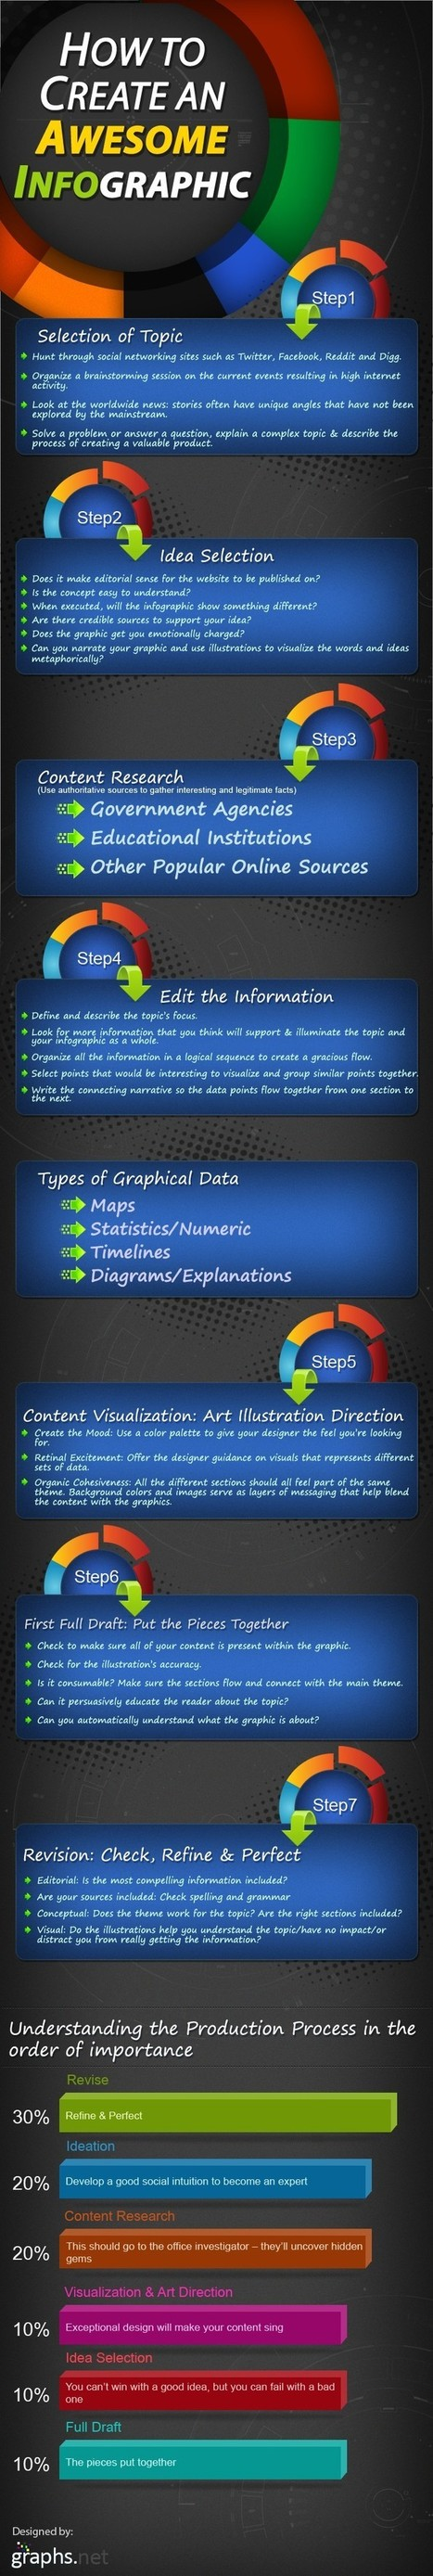 Step by Step Guide to Create An Awesome Infographic | All Infographics | Viral Classified News | Scoop.it